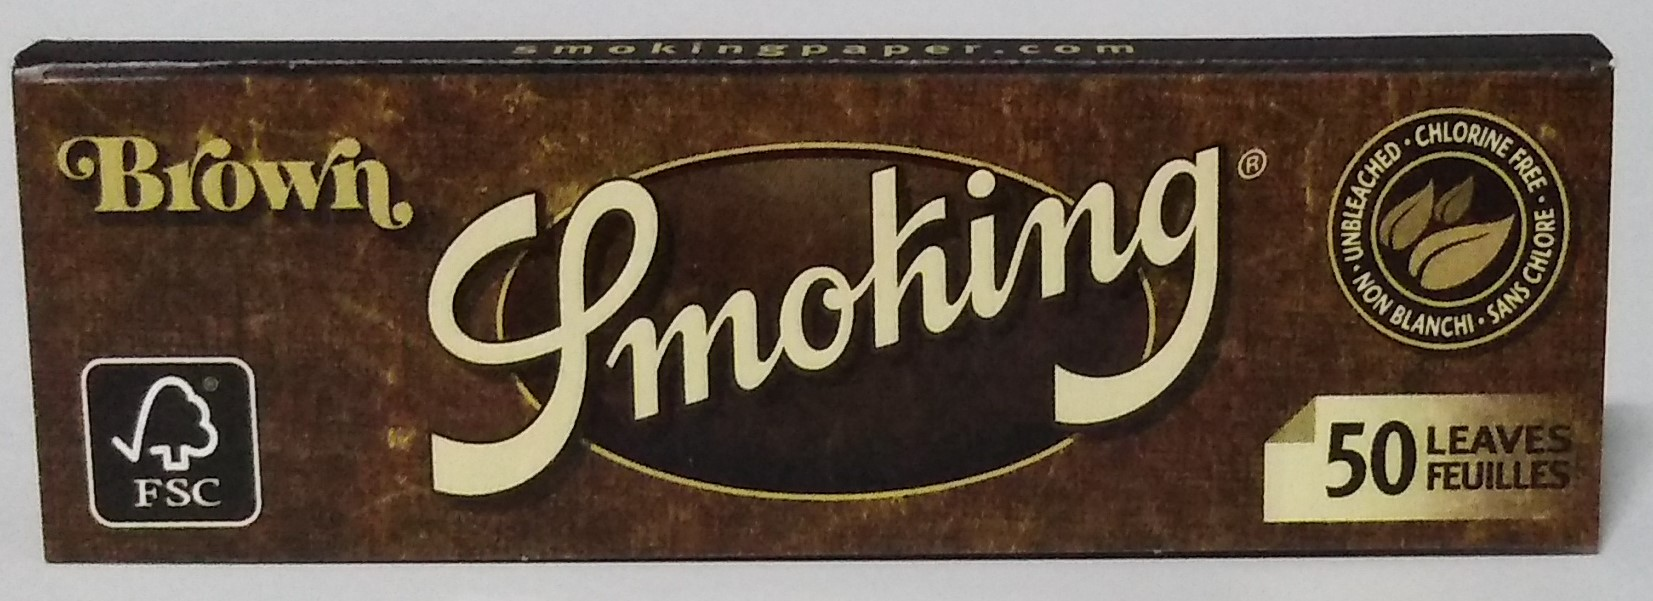 Papel Smoking Brown 1.1/4